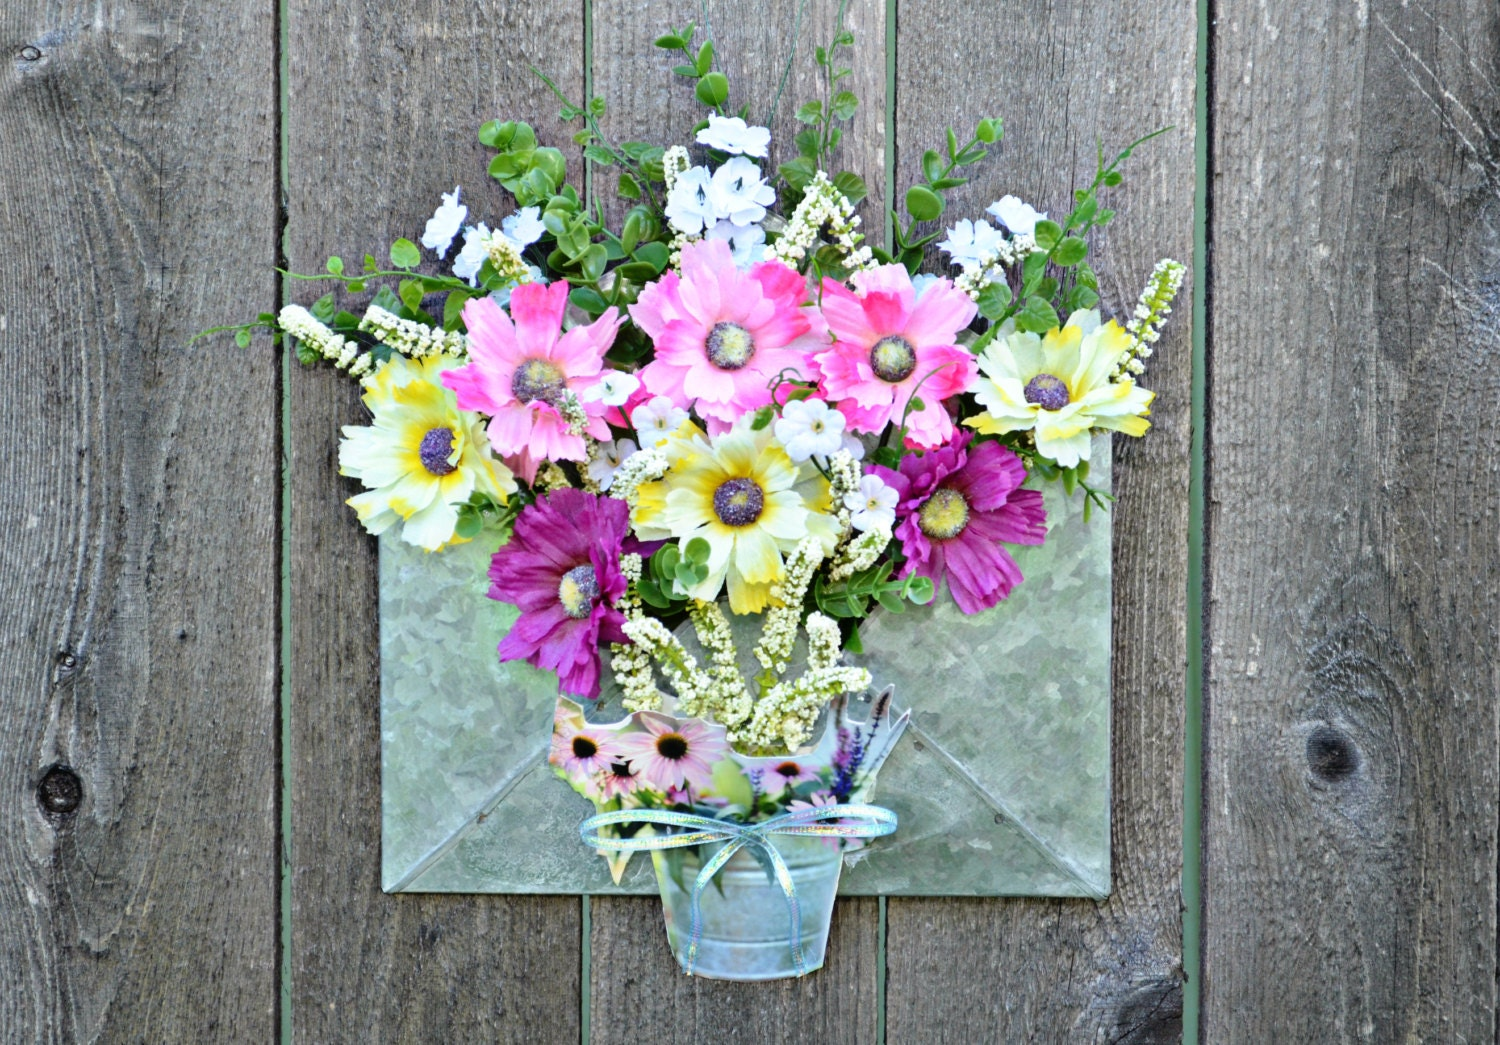 Floral arrangement home decor wall decor summer decor for Decor point international llc